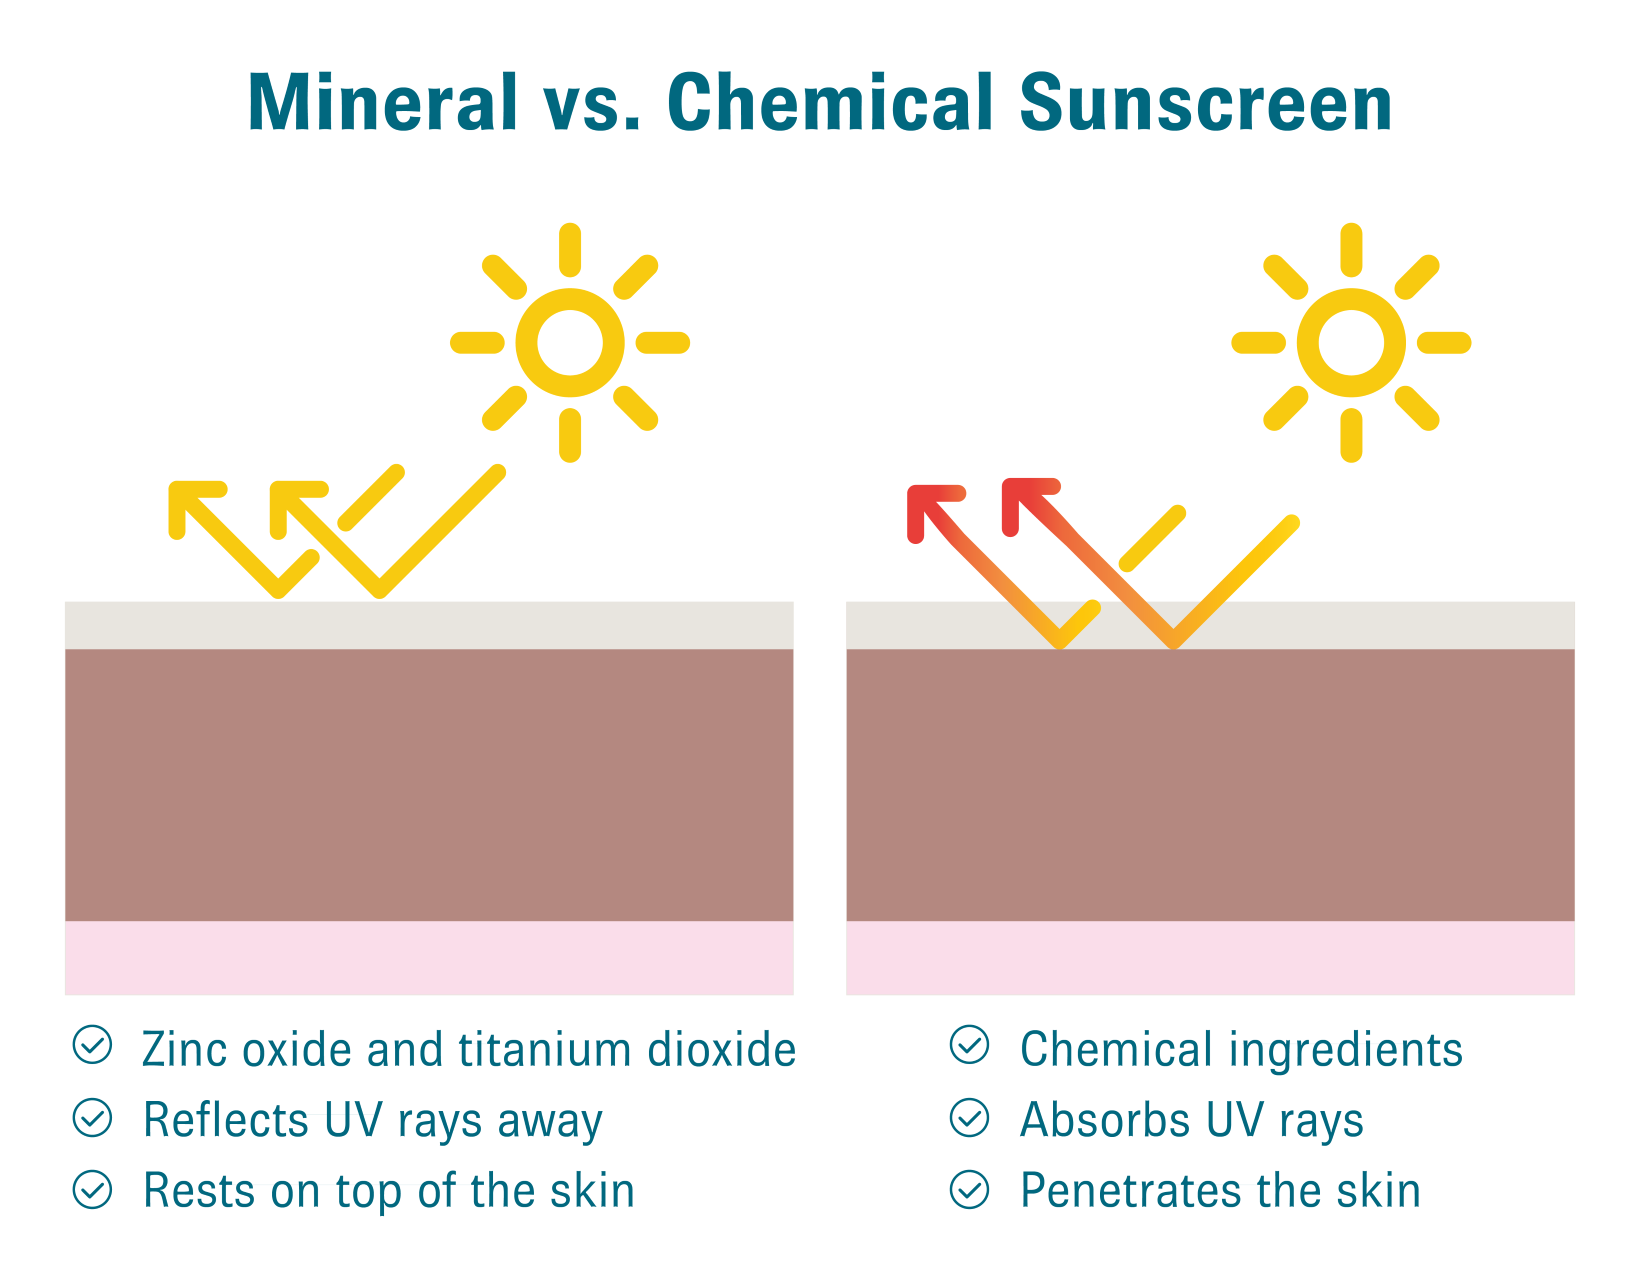 Mineral vs Chemical sunscreen infographic